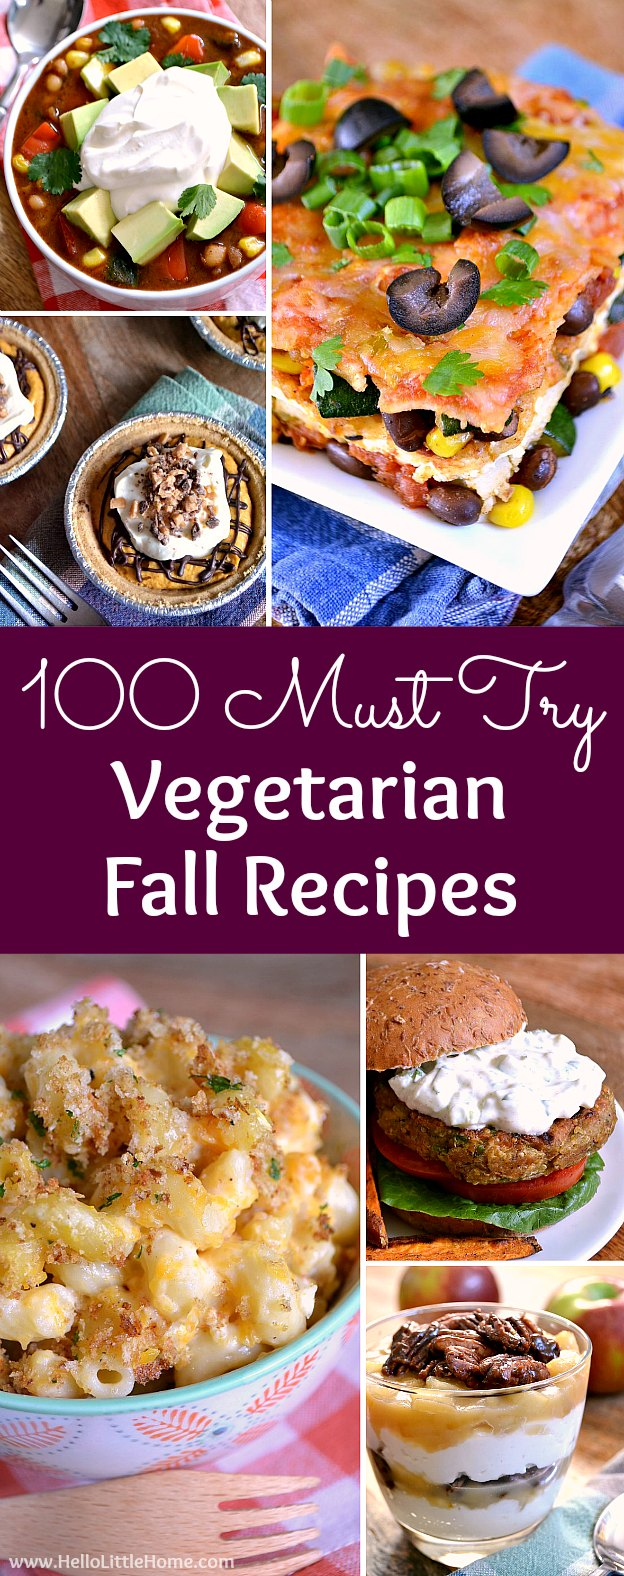 100 Must Try Vegetarian Fall Recipes ... everything from dinner recipes to desserts! The BEST fall recipes ... start your autumn meal planning now. Lots of comfort foods, crockpot, treats, and healthy fall recipes, too + options for vegans, too. | Hello Little Home